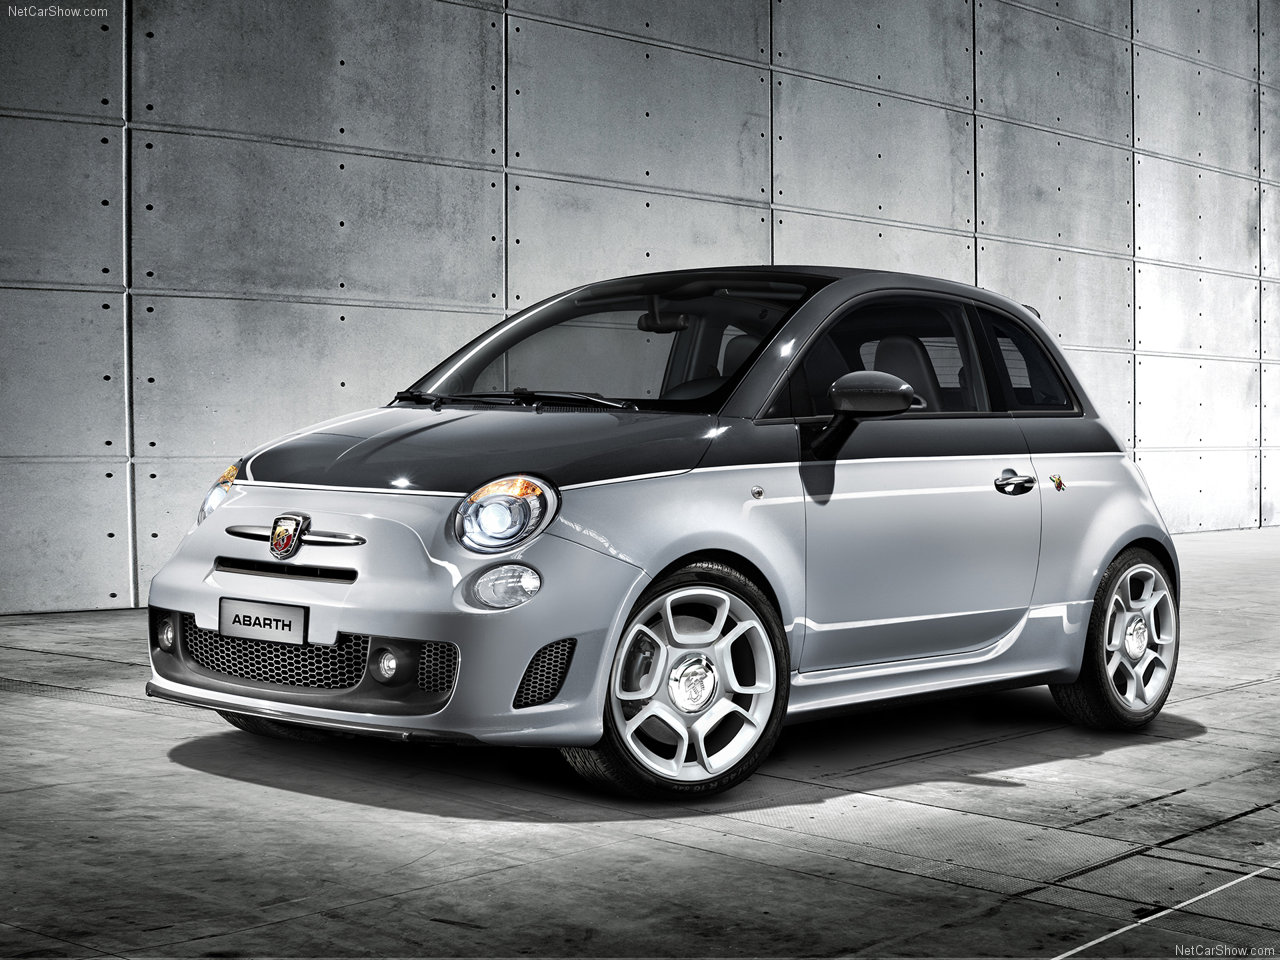 Abarth Car | The Car C...